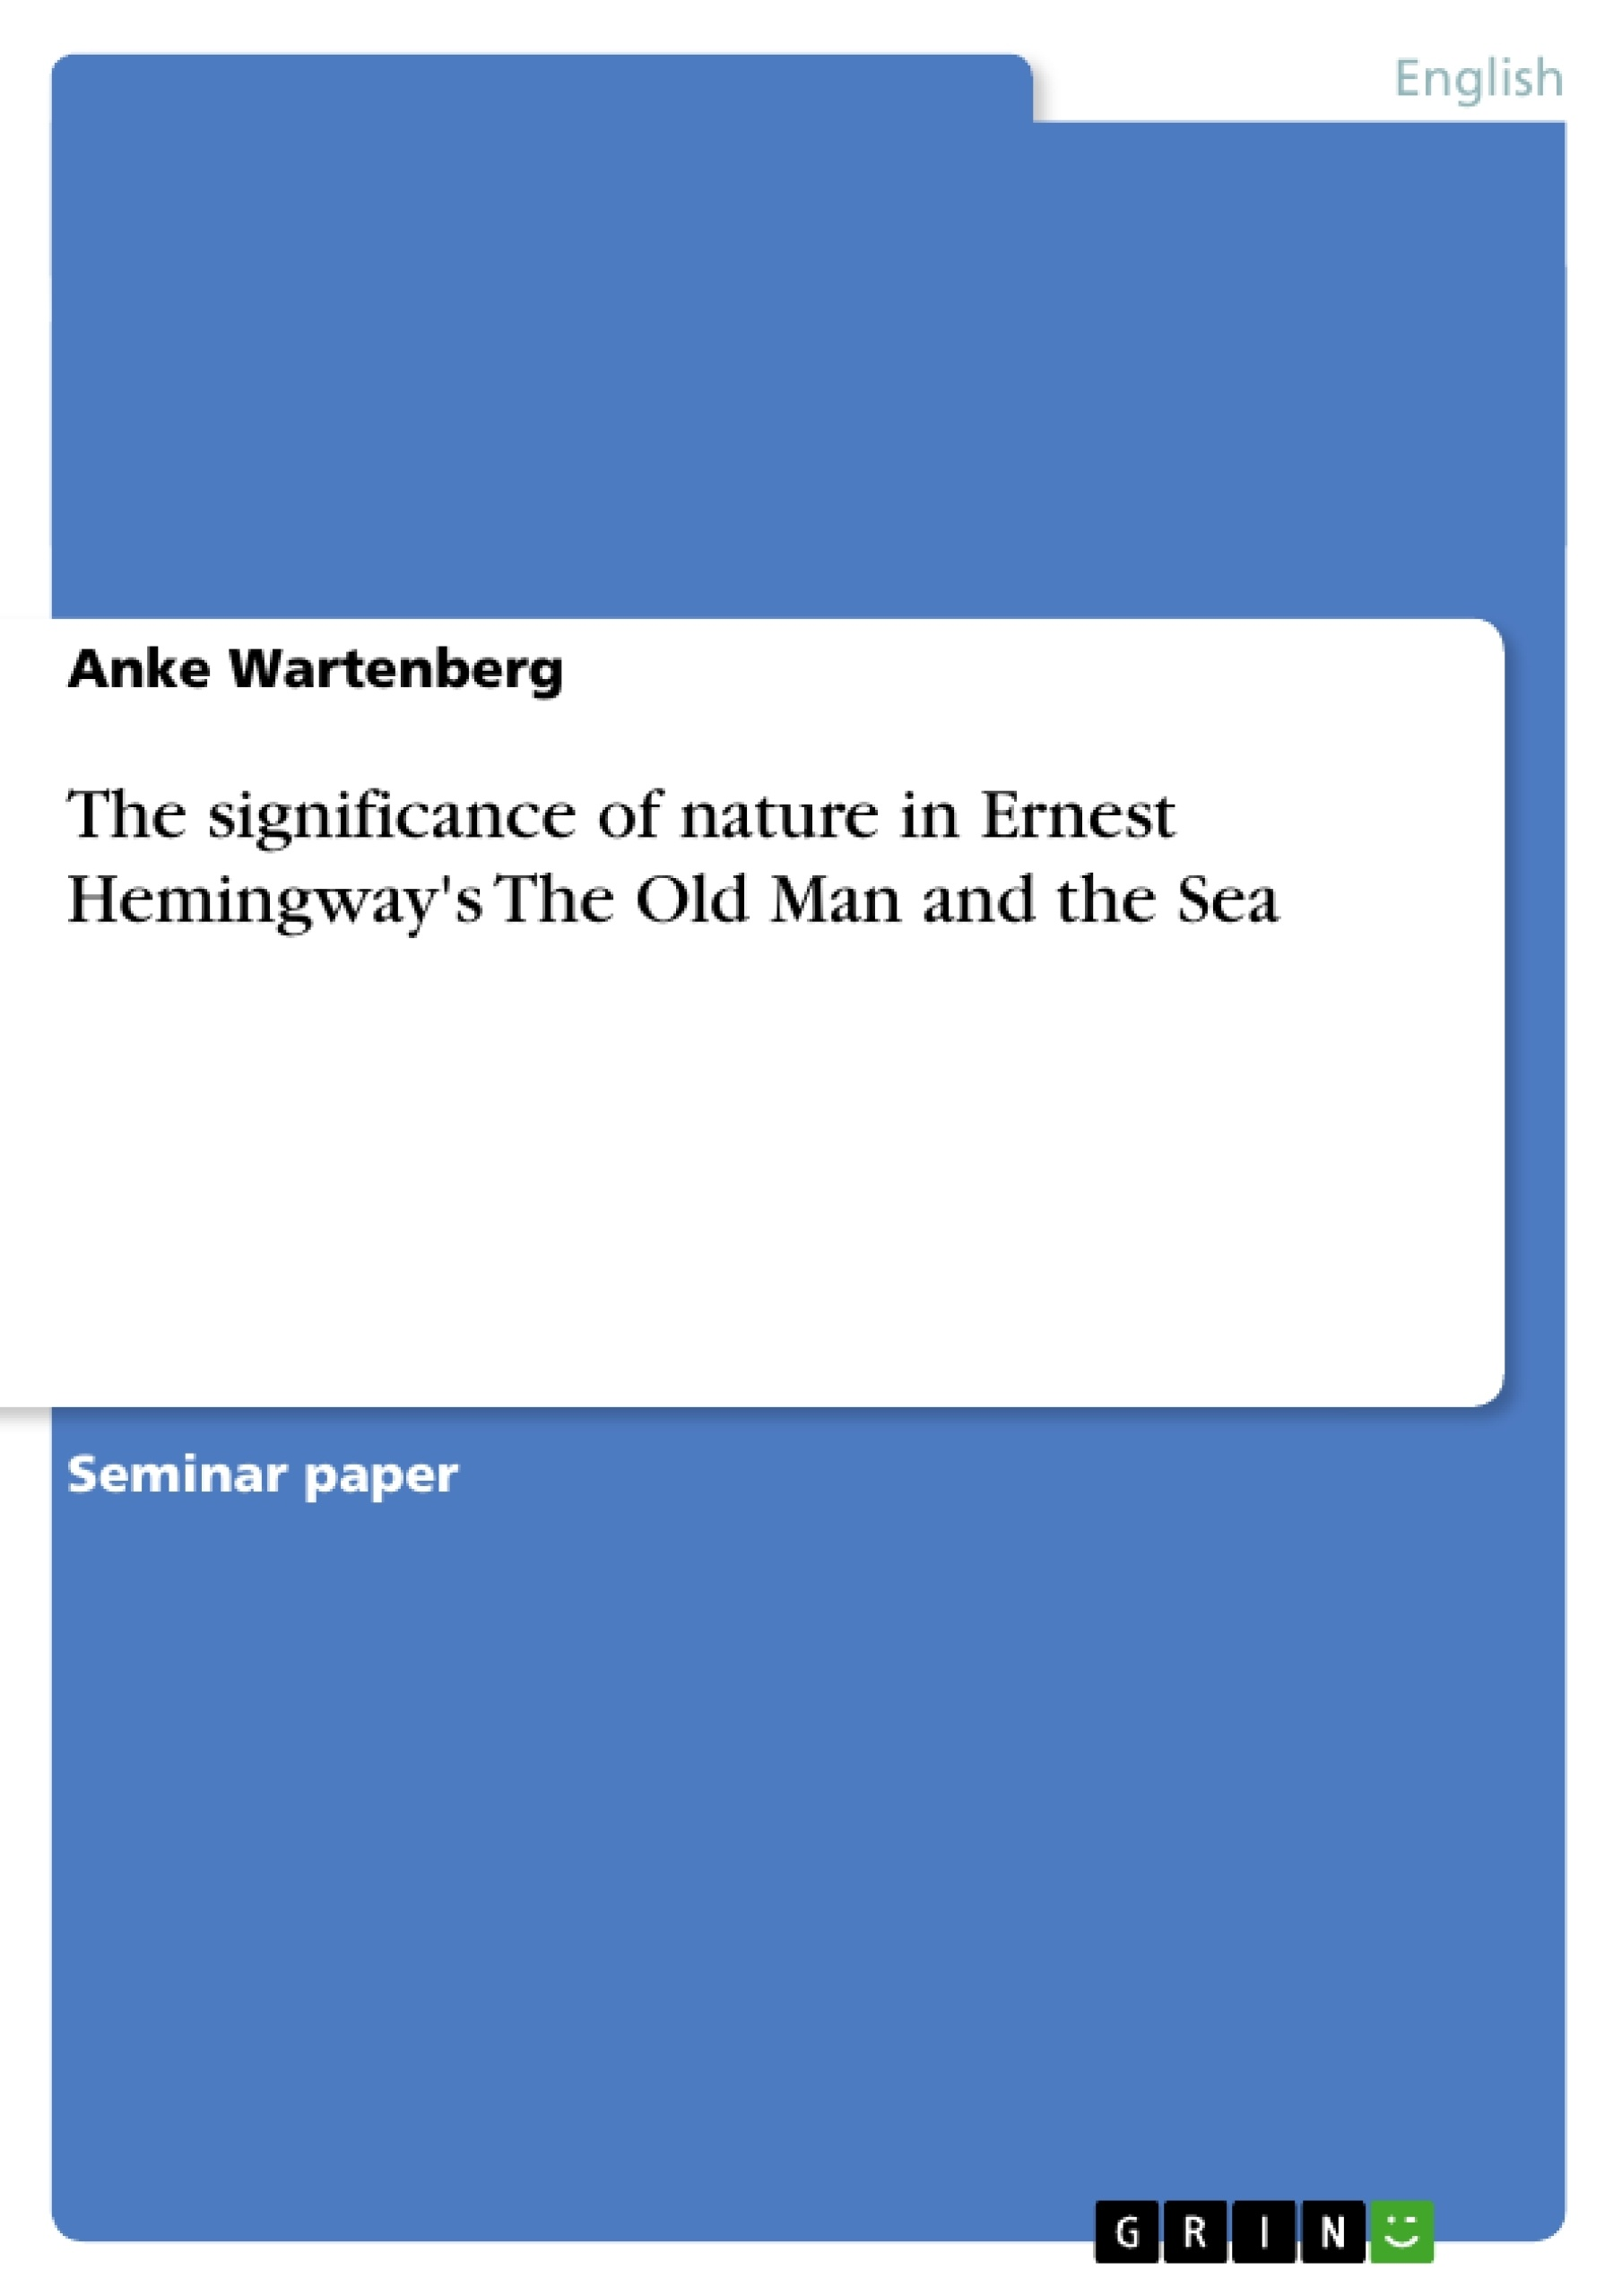 Title: The significance of nature in Ernest Hemingway's The Old Man and the Sea